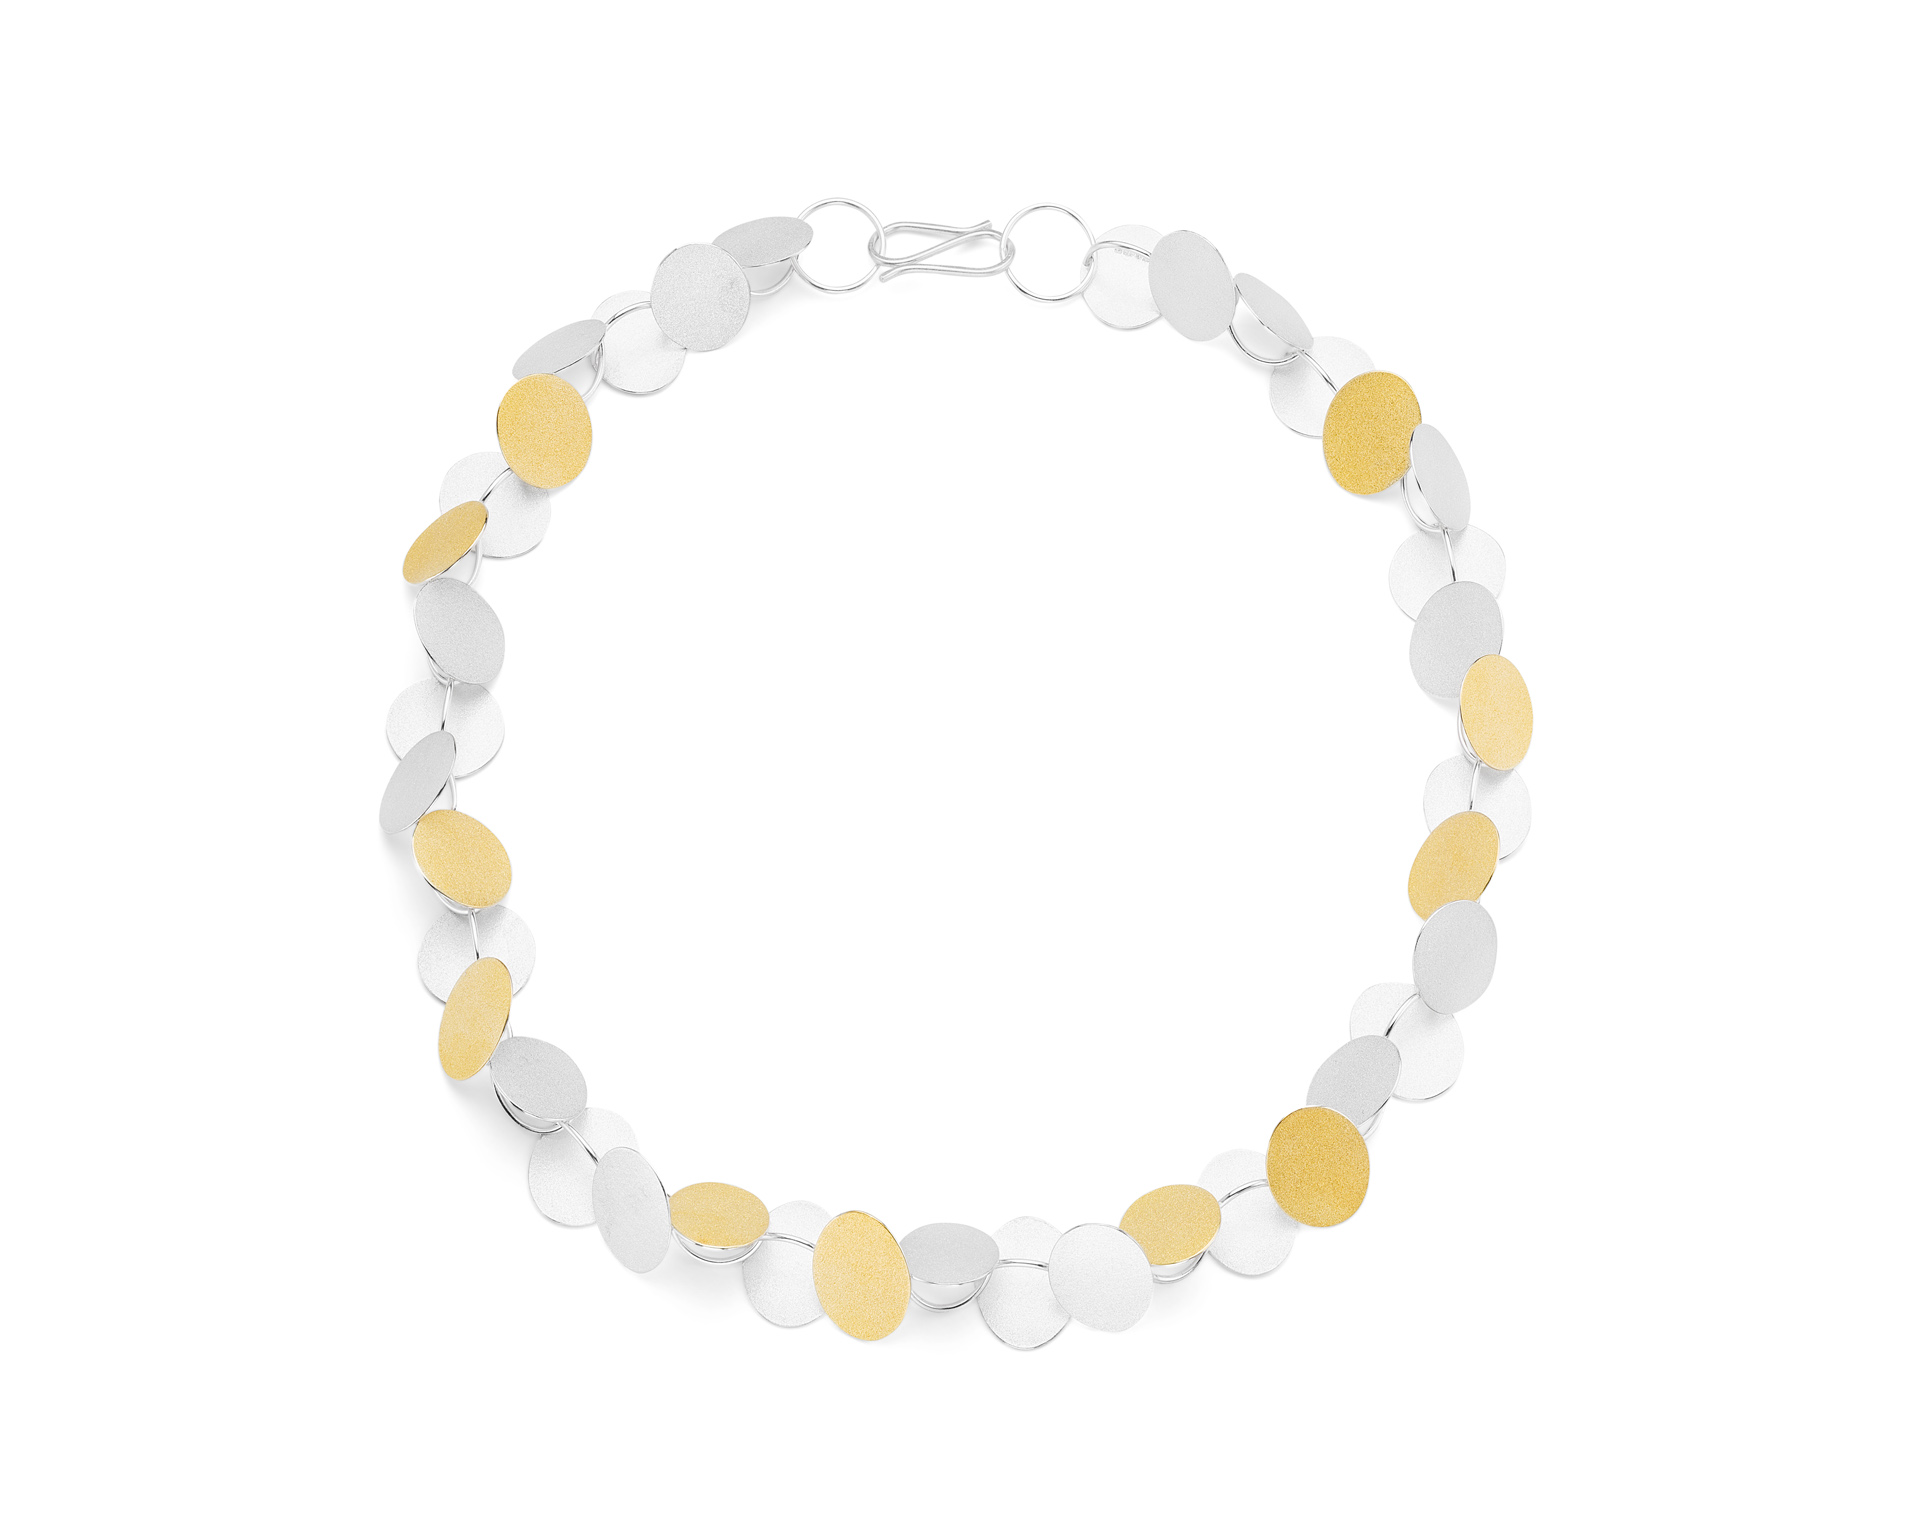 Heather Woof Jewellery.  Rhythm necklace in silver and fine gold bi-metal.